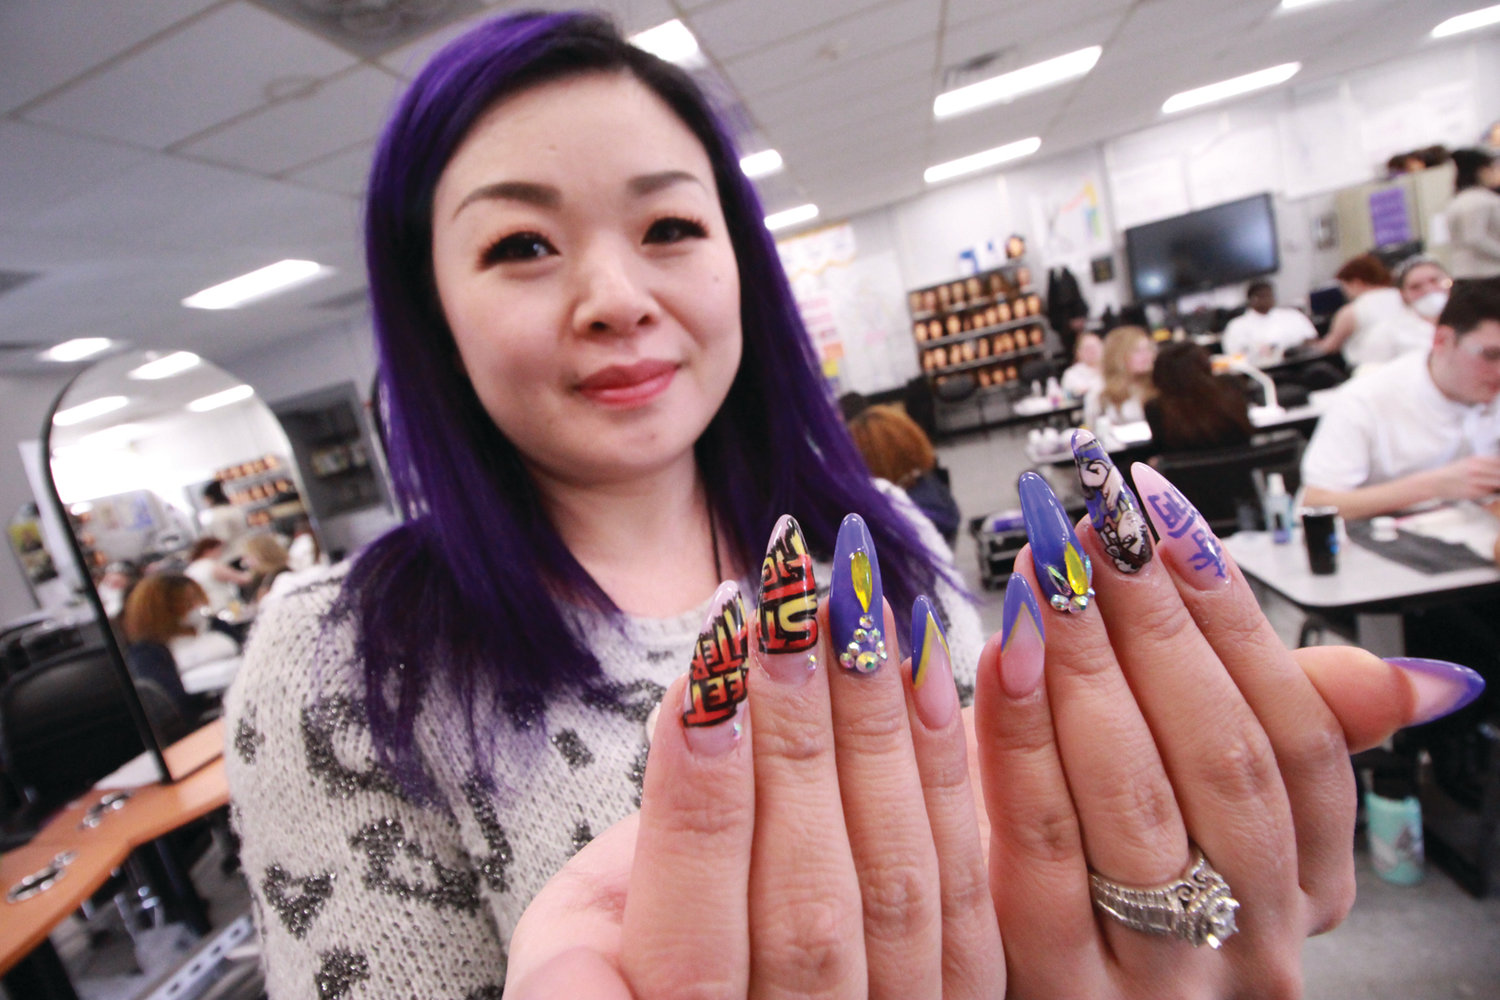 A(R)T YOUR FINGERTIPS: Kerry Pez, who owns InternatioNails in Cranston, served as judge for the nail care portion of the competition. As part of the event, students had to do nail art.